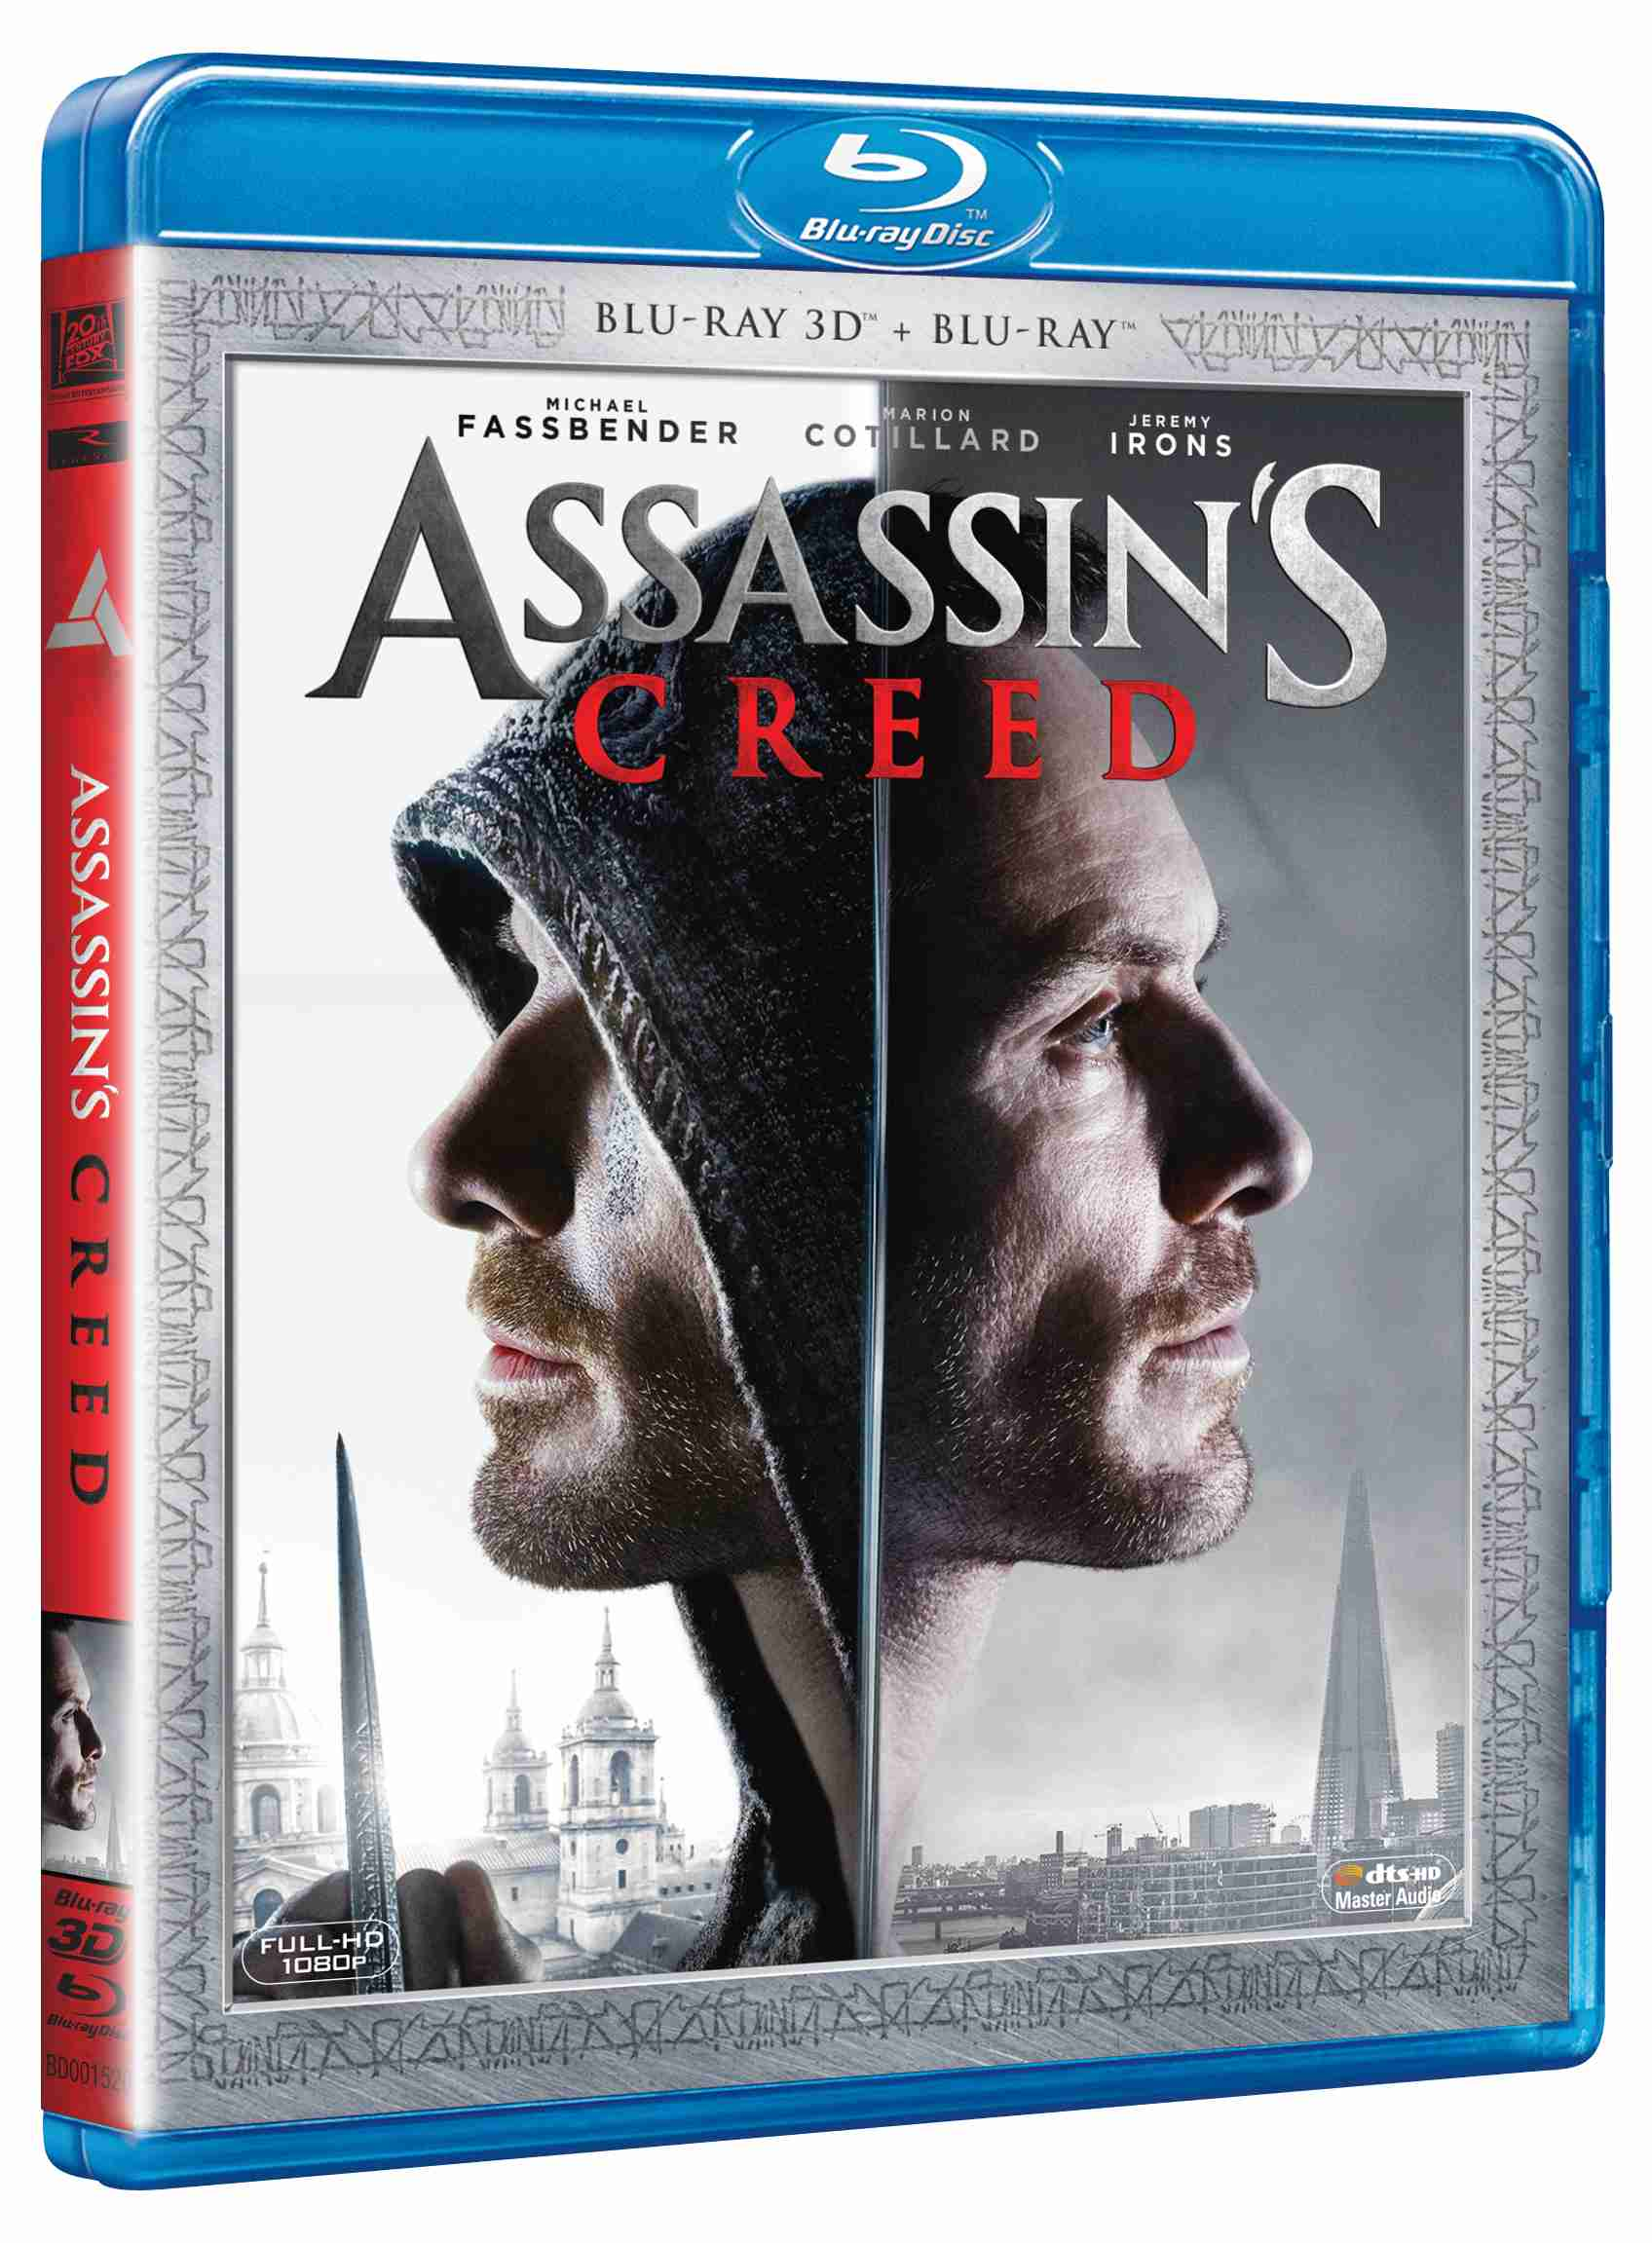 ASSASSINS CREED - Blu-ray 3D + 2D (2 BD)